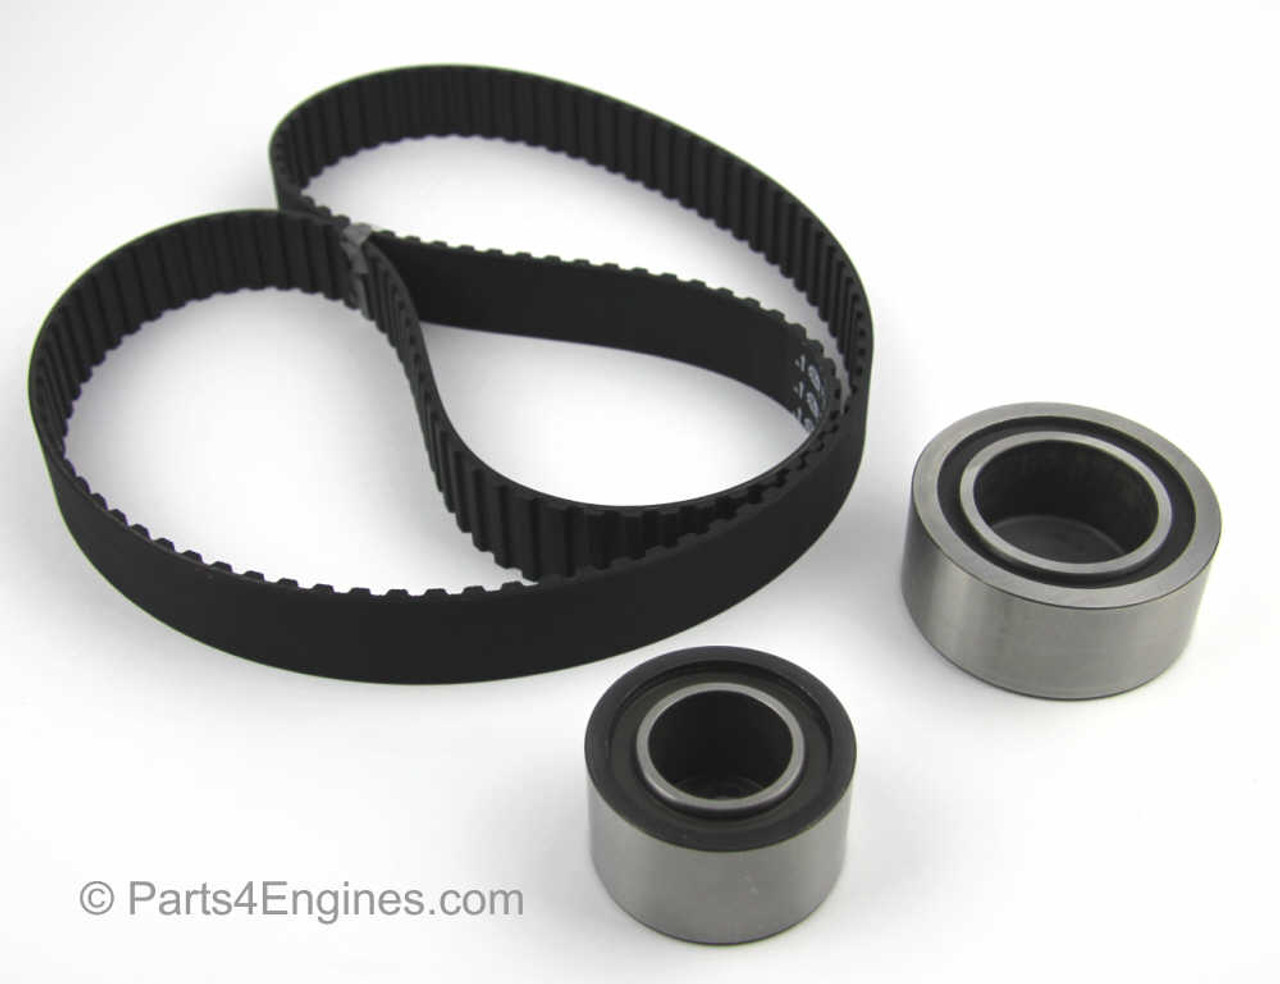 Perkins Prima M50 Timing Belt kit from parts4engines.com